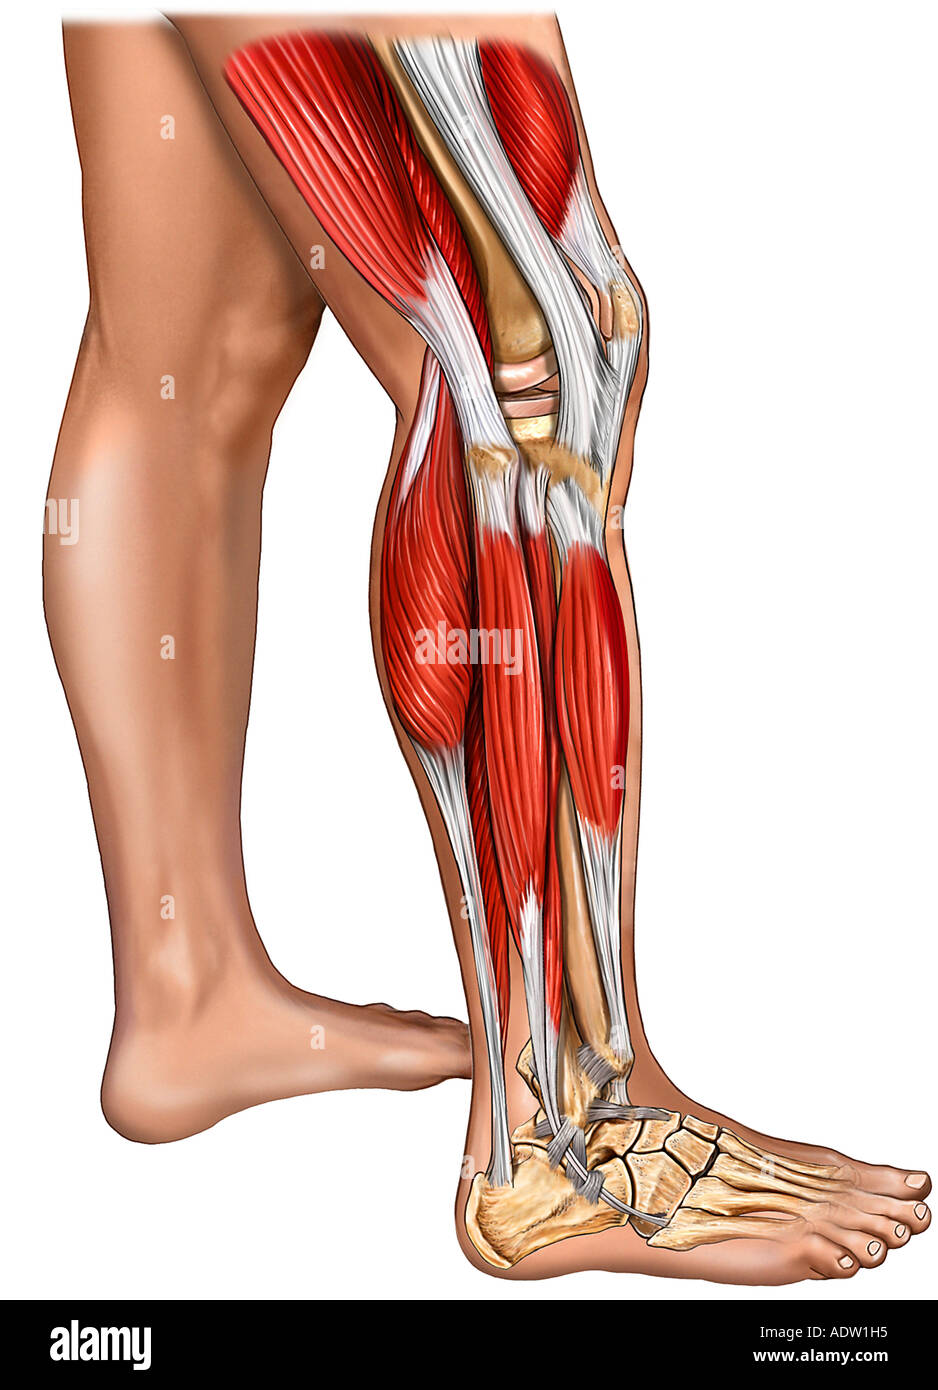 Right Leg Muscles Stock Photos Right Leg Muscles Stock Images Alamy